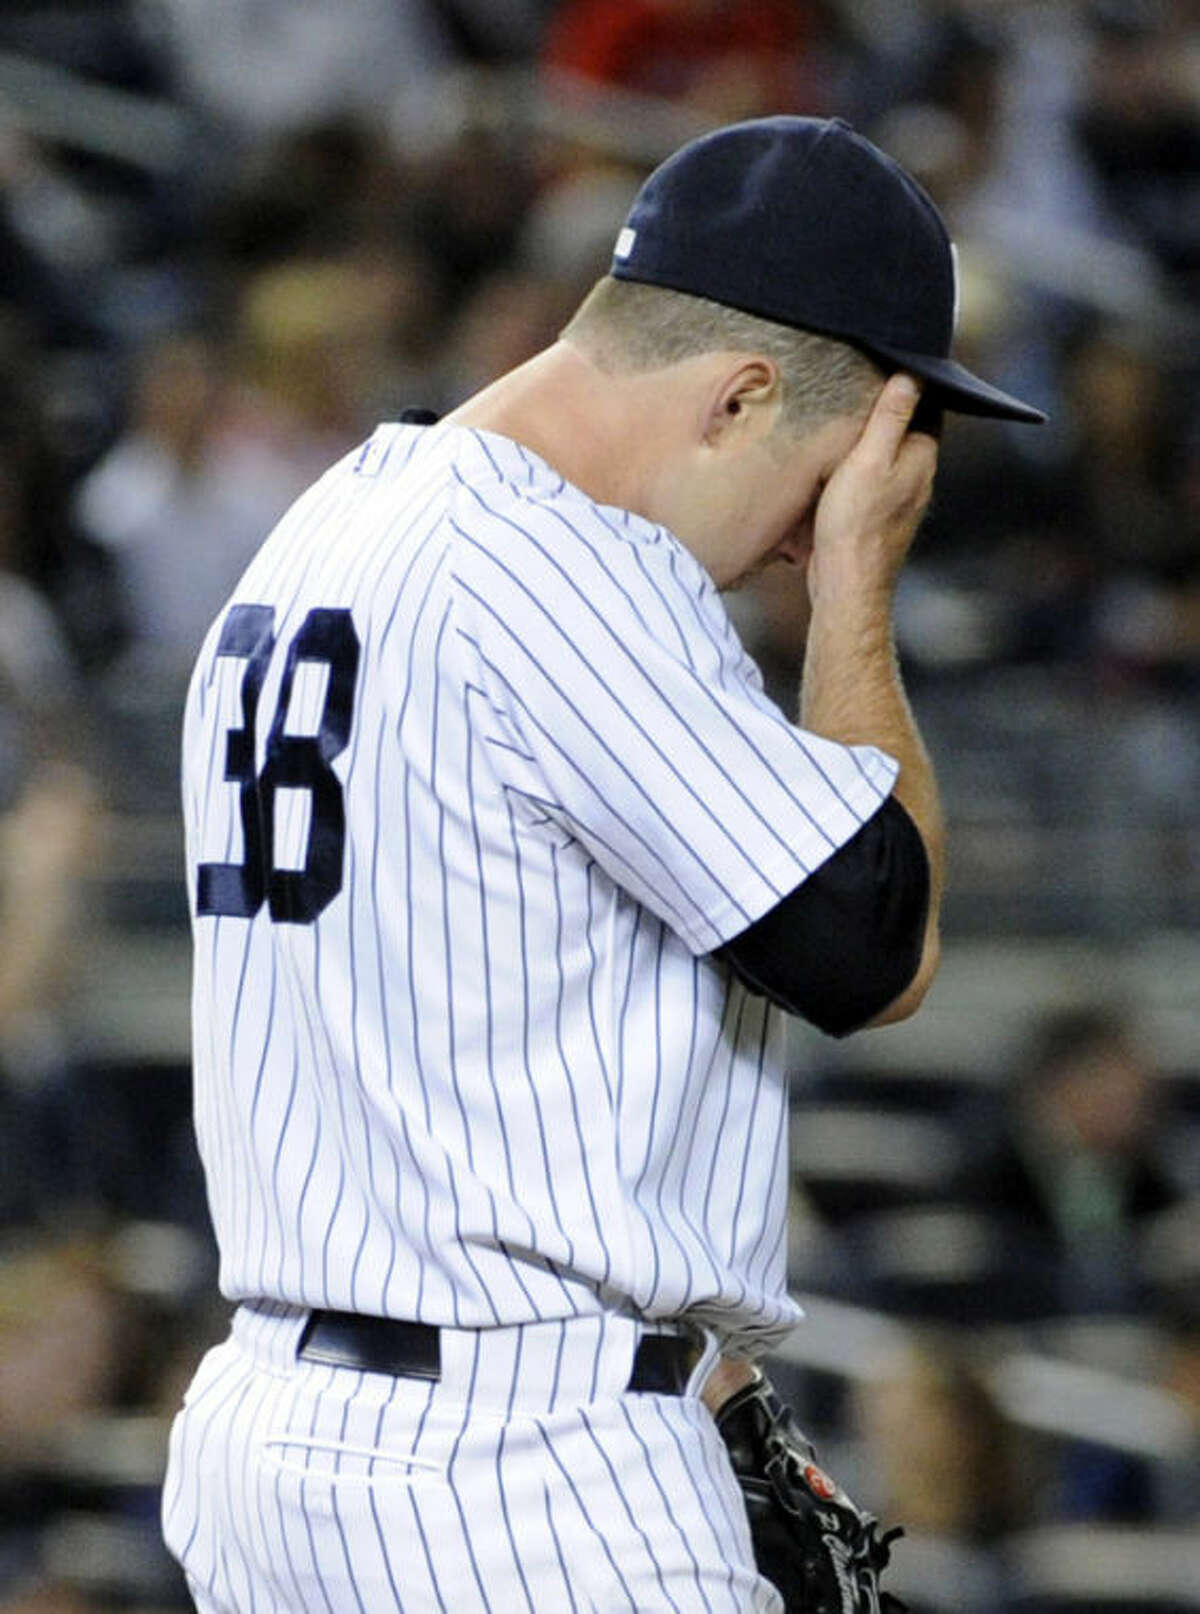 New York Yankees pitcher Preston Claiborne reacts as Boston Red Sox batter Shane Victorino (not shown) rounds the bases after hitting a two-run home run during the eighth inning of a baseball game, Friday, Sept. 6, 2013, at Yankee Stadium in New York. (AP Photo/Bill Kostroun)